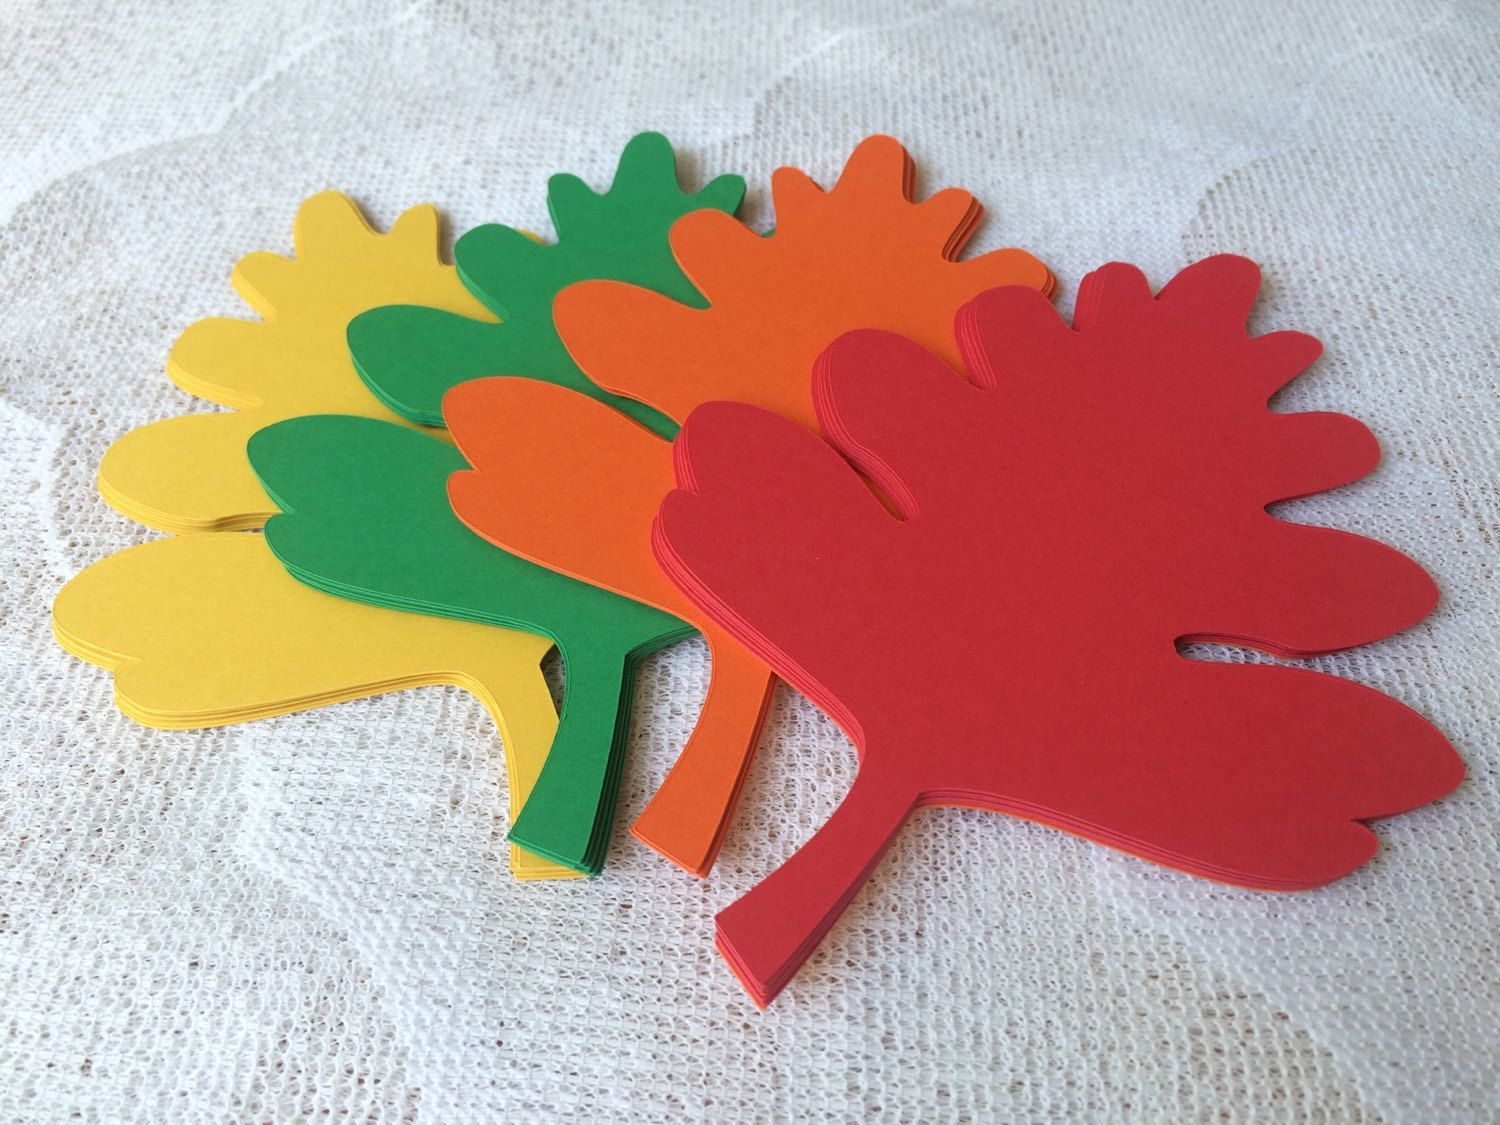 32 Oak Leaf Die Cuts, Fall Leaves for Bulletin Boards, Classroom Decoration, Fall Party - Jumbo 5.5 Inch by EllieMarieDesigns on Etsy